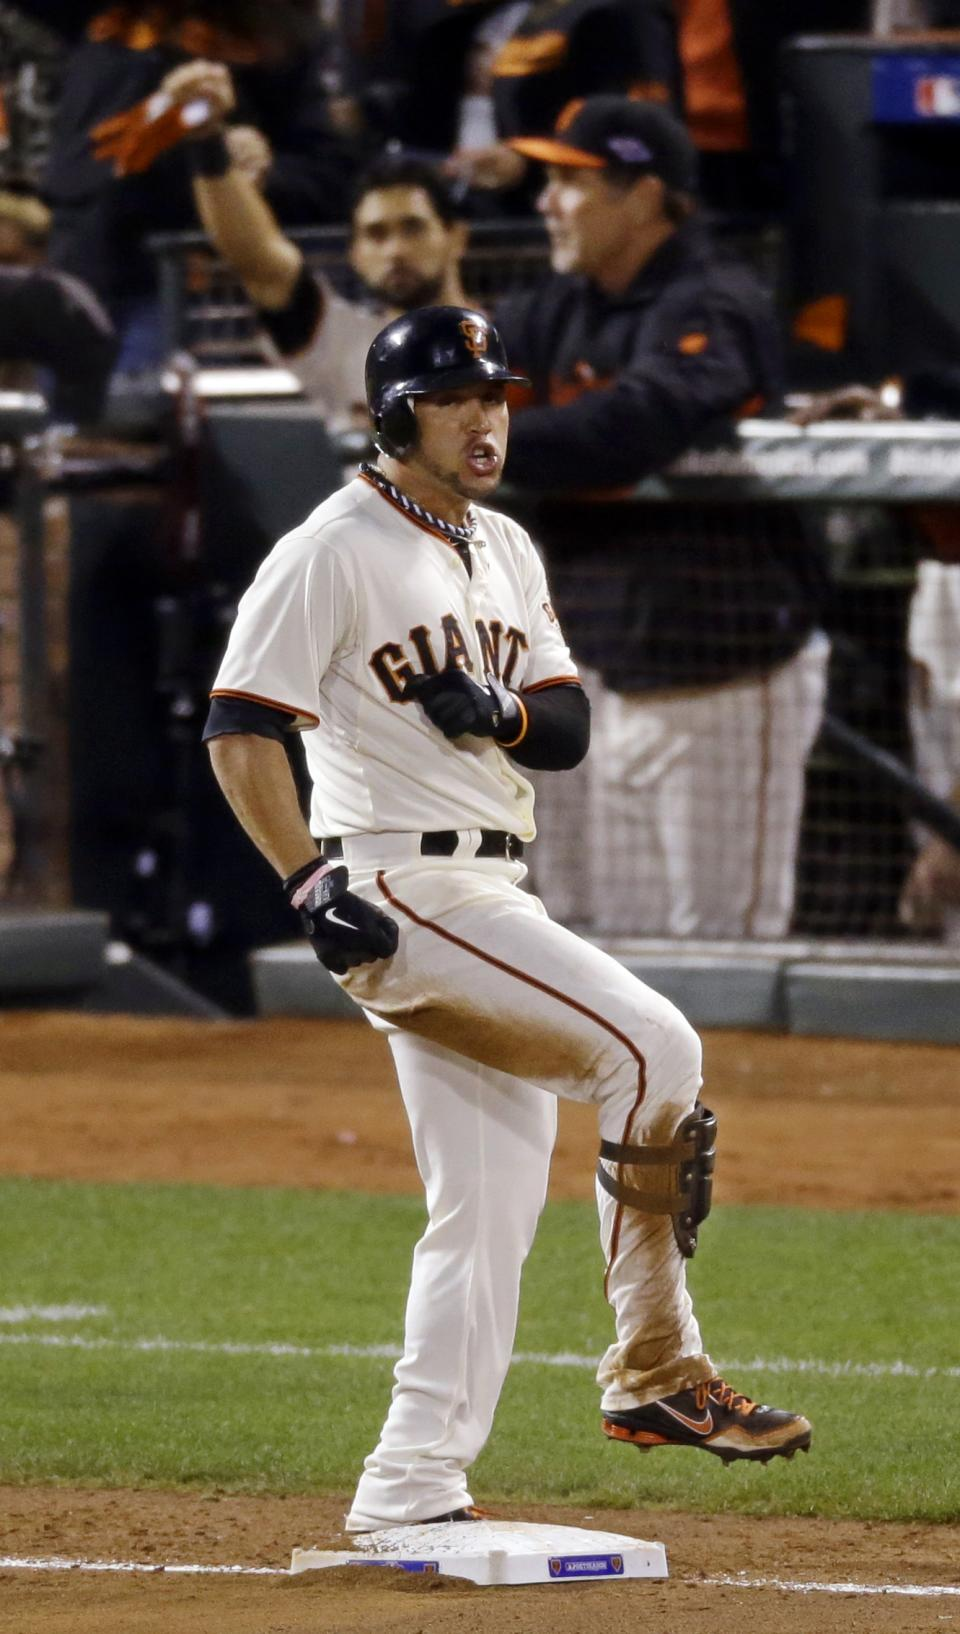 San Francisco Giants' Gregor Blanco reacts after hitting a three-run triple during the fourth inning of Game 1 of baseball's National League championship series against the St. Louis Cardinals Sunday, Oct. 14, 2012, in San Francisco. (AP Photo/Mark Humphrey)